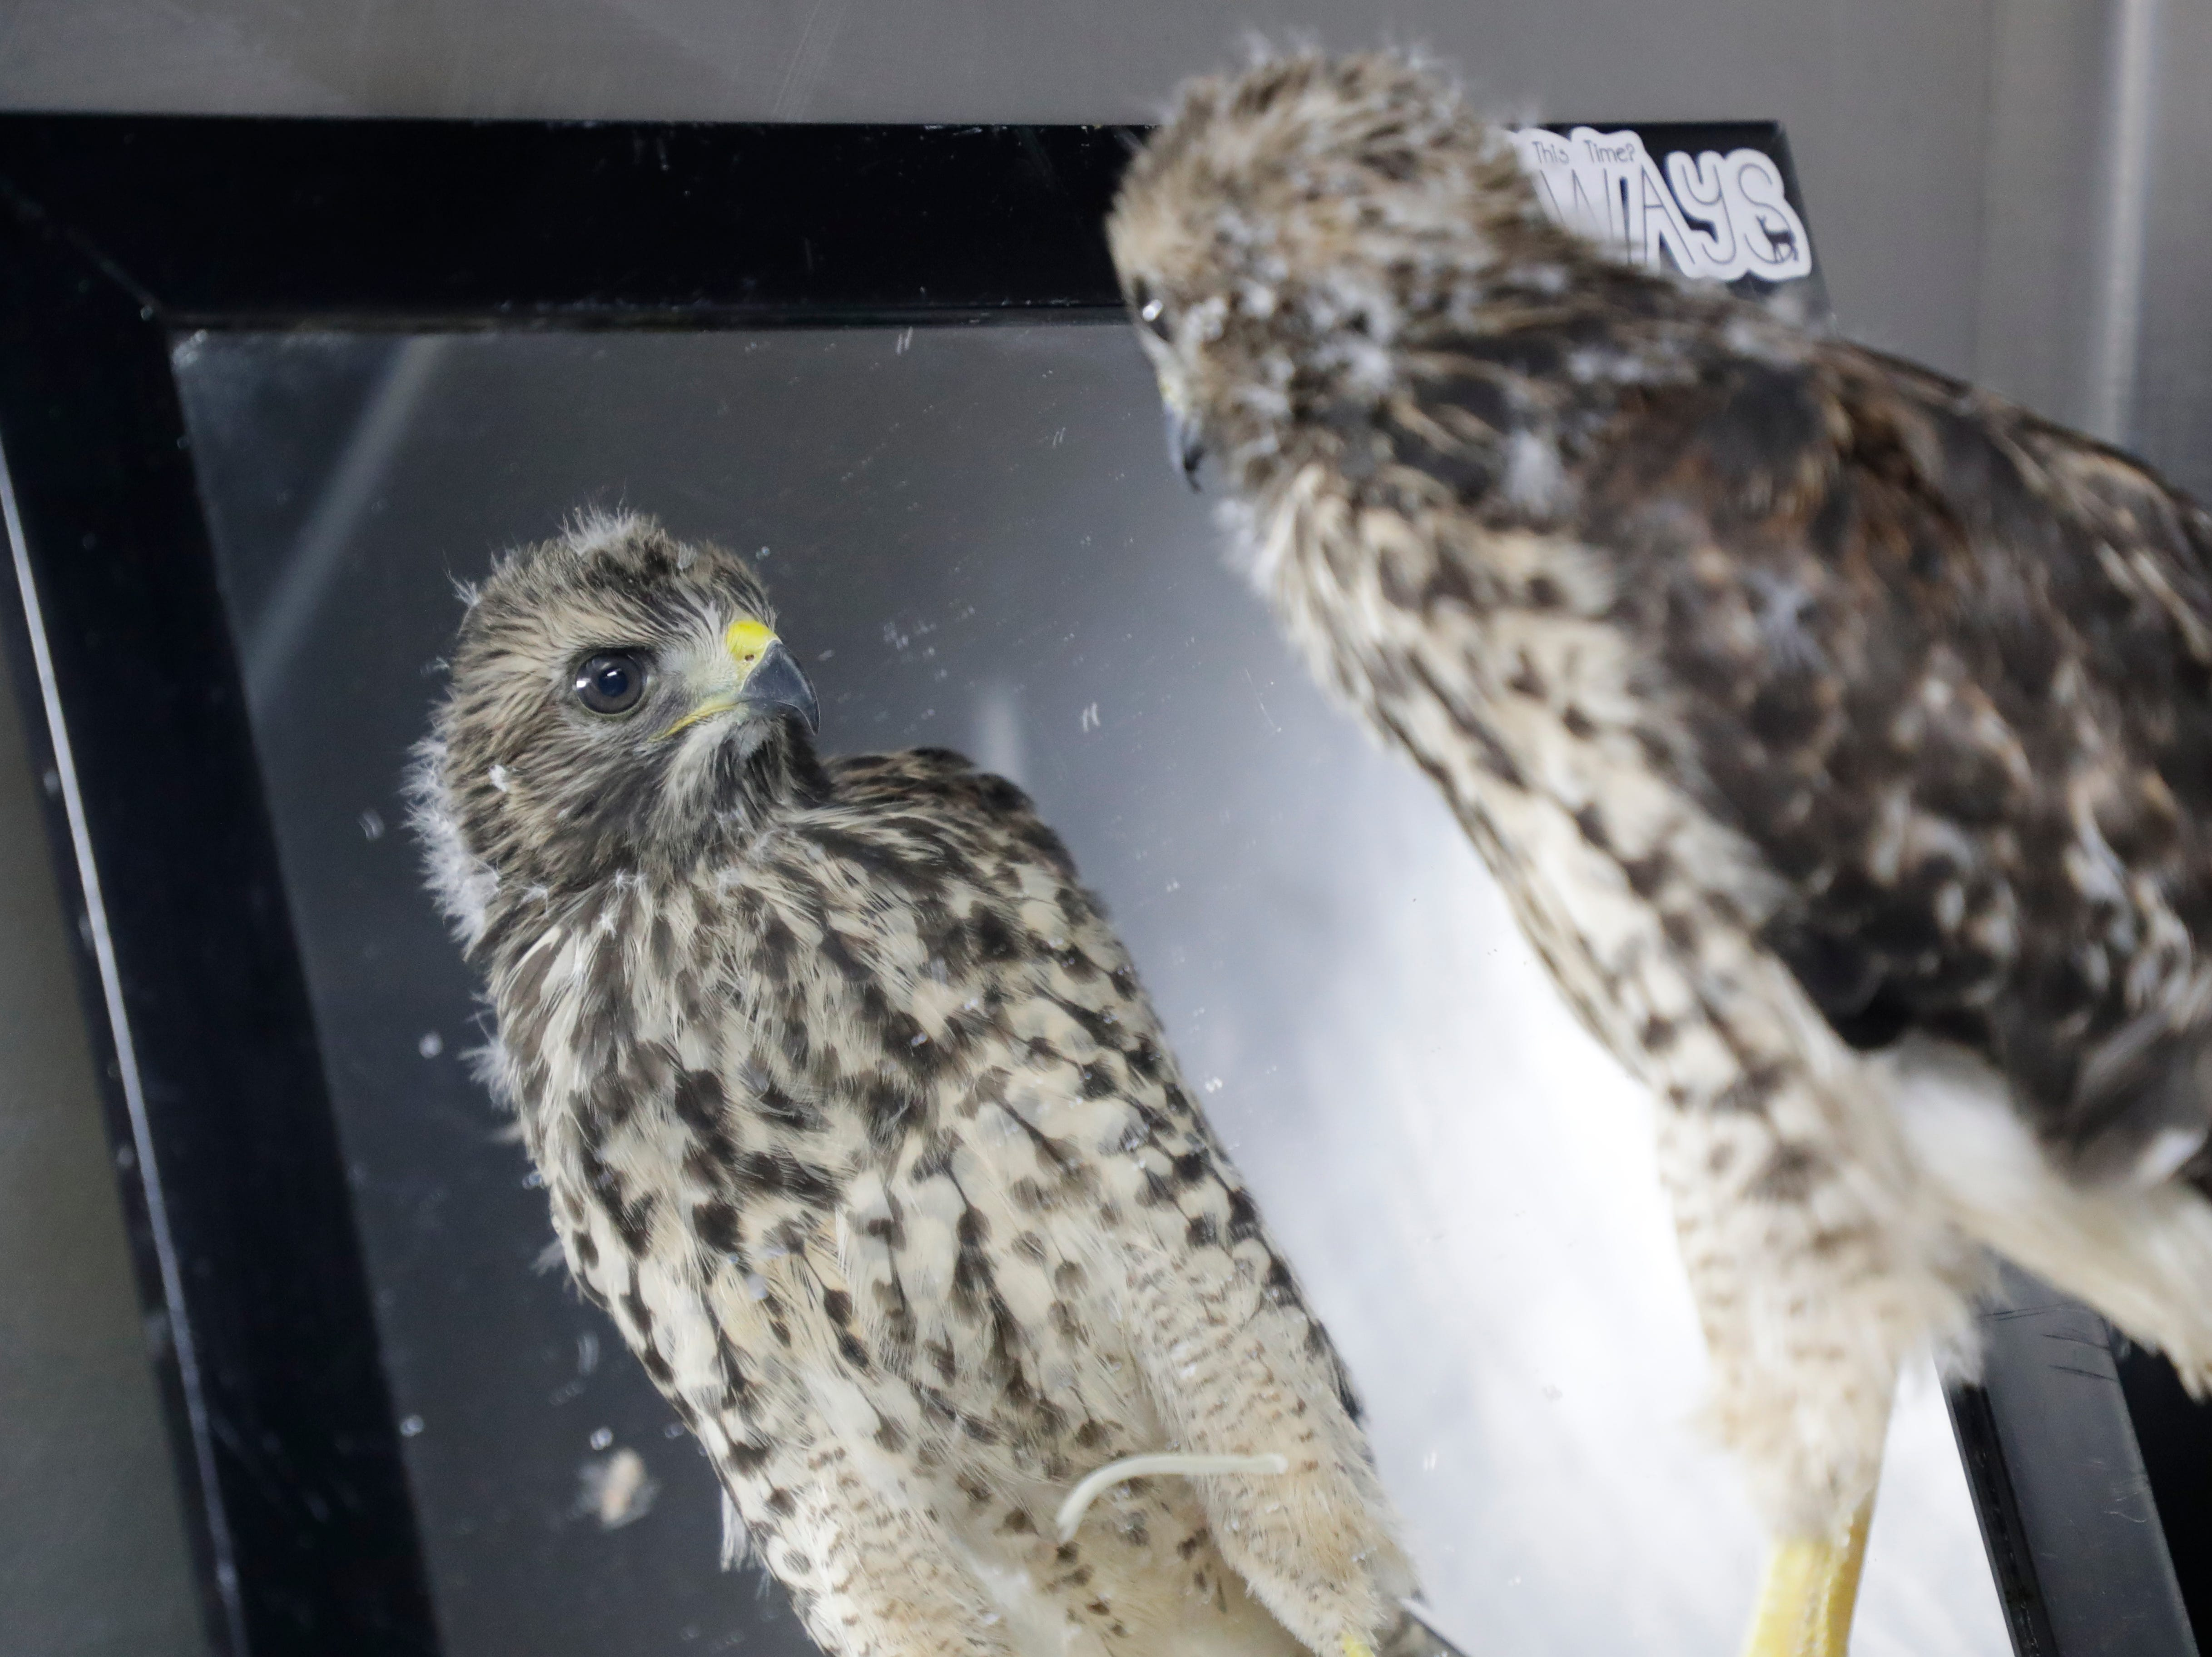 A red shouldered hawk stares at its own reflection in a mirror in its enclosure at St. Francis Wildlife Hospital Monday, May 13, 2019.